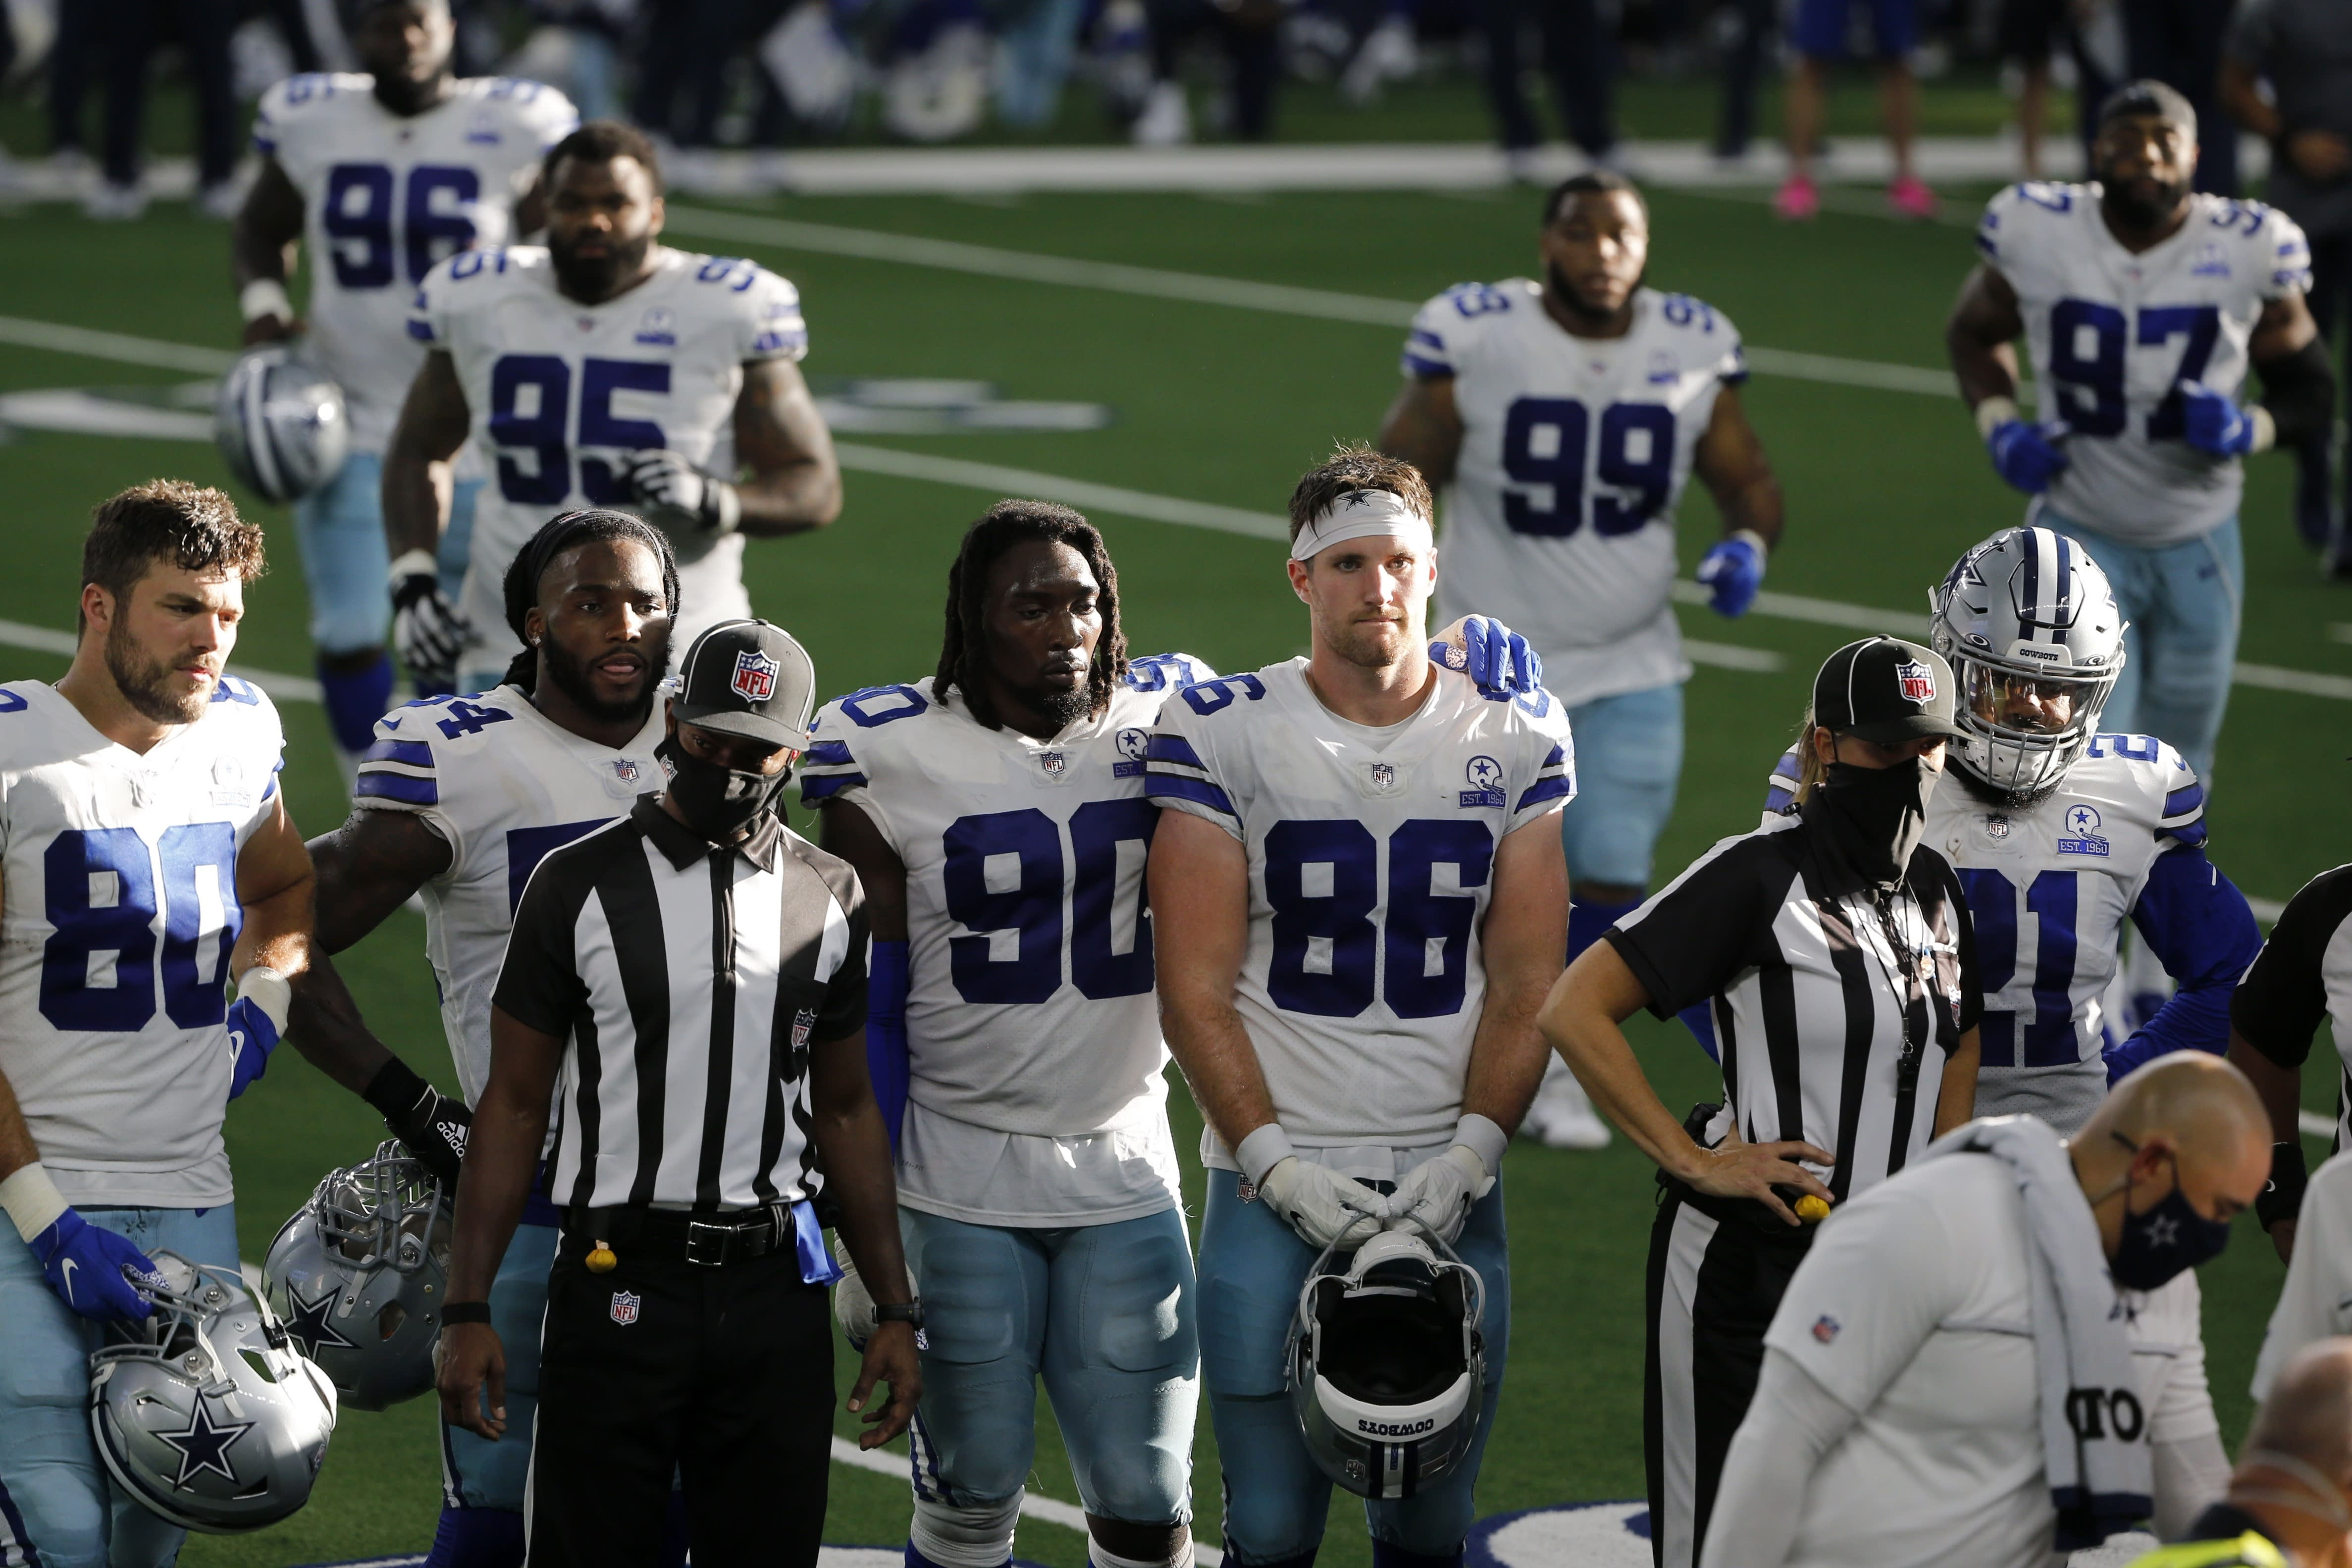 Dallas Cowboys players, Blake Bell (80), DeMarcus Lawrence (90), Dalton Schultz (86), Ezekiel Elliott (21) and others look on as quarterback Dak Prescott, not shown, receives medical attention after suffering a lower right leg injury running the ball against the New York Giants in the second half of an NFL football game in Arlington, Texas, Sunday, Oct. 11, 2020. (AP Photo/Michael Ainsworth)